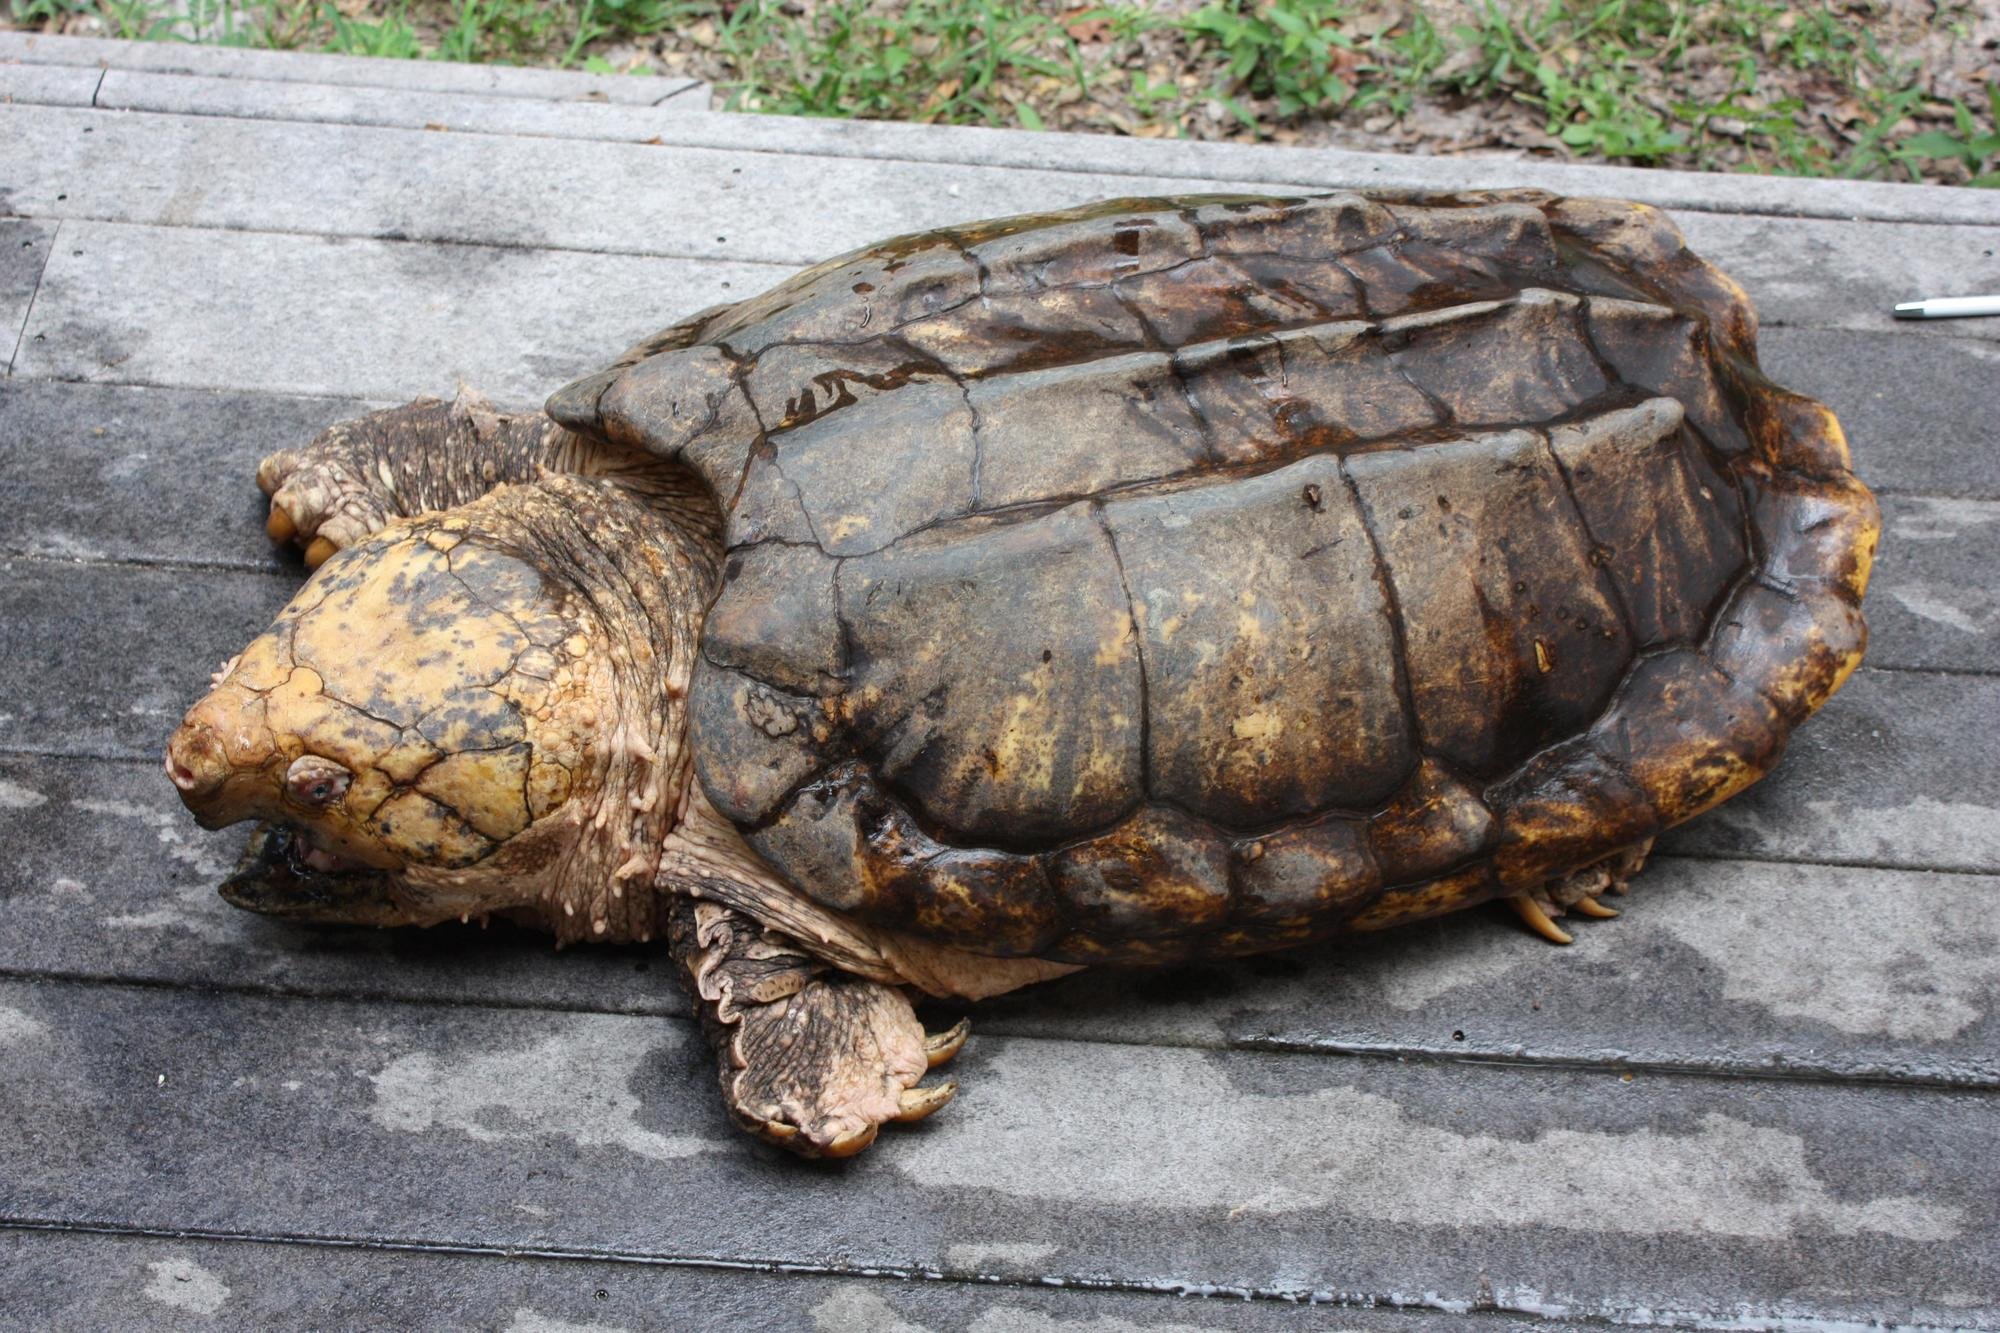 Suwannee alligator snapping turtle